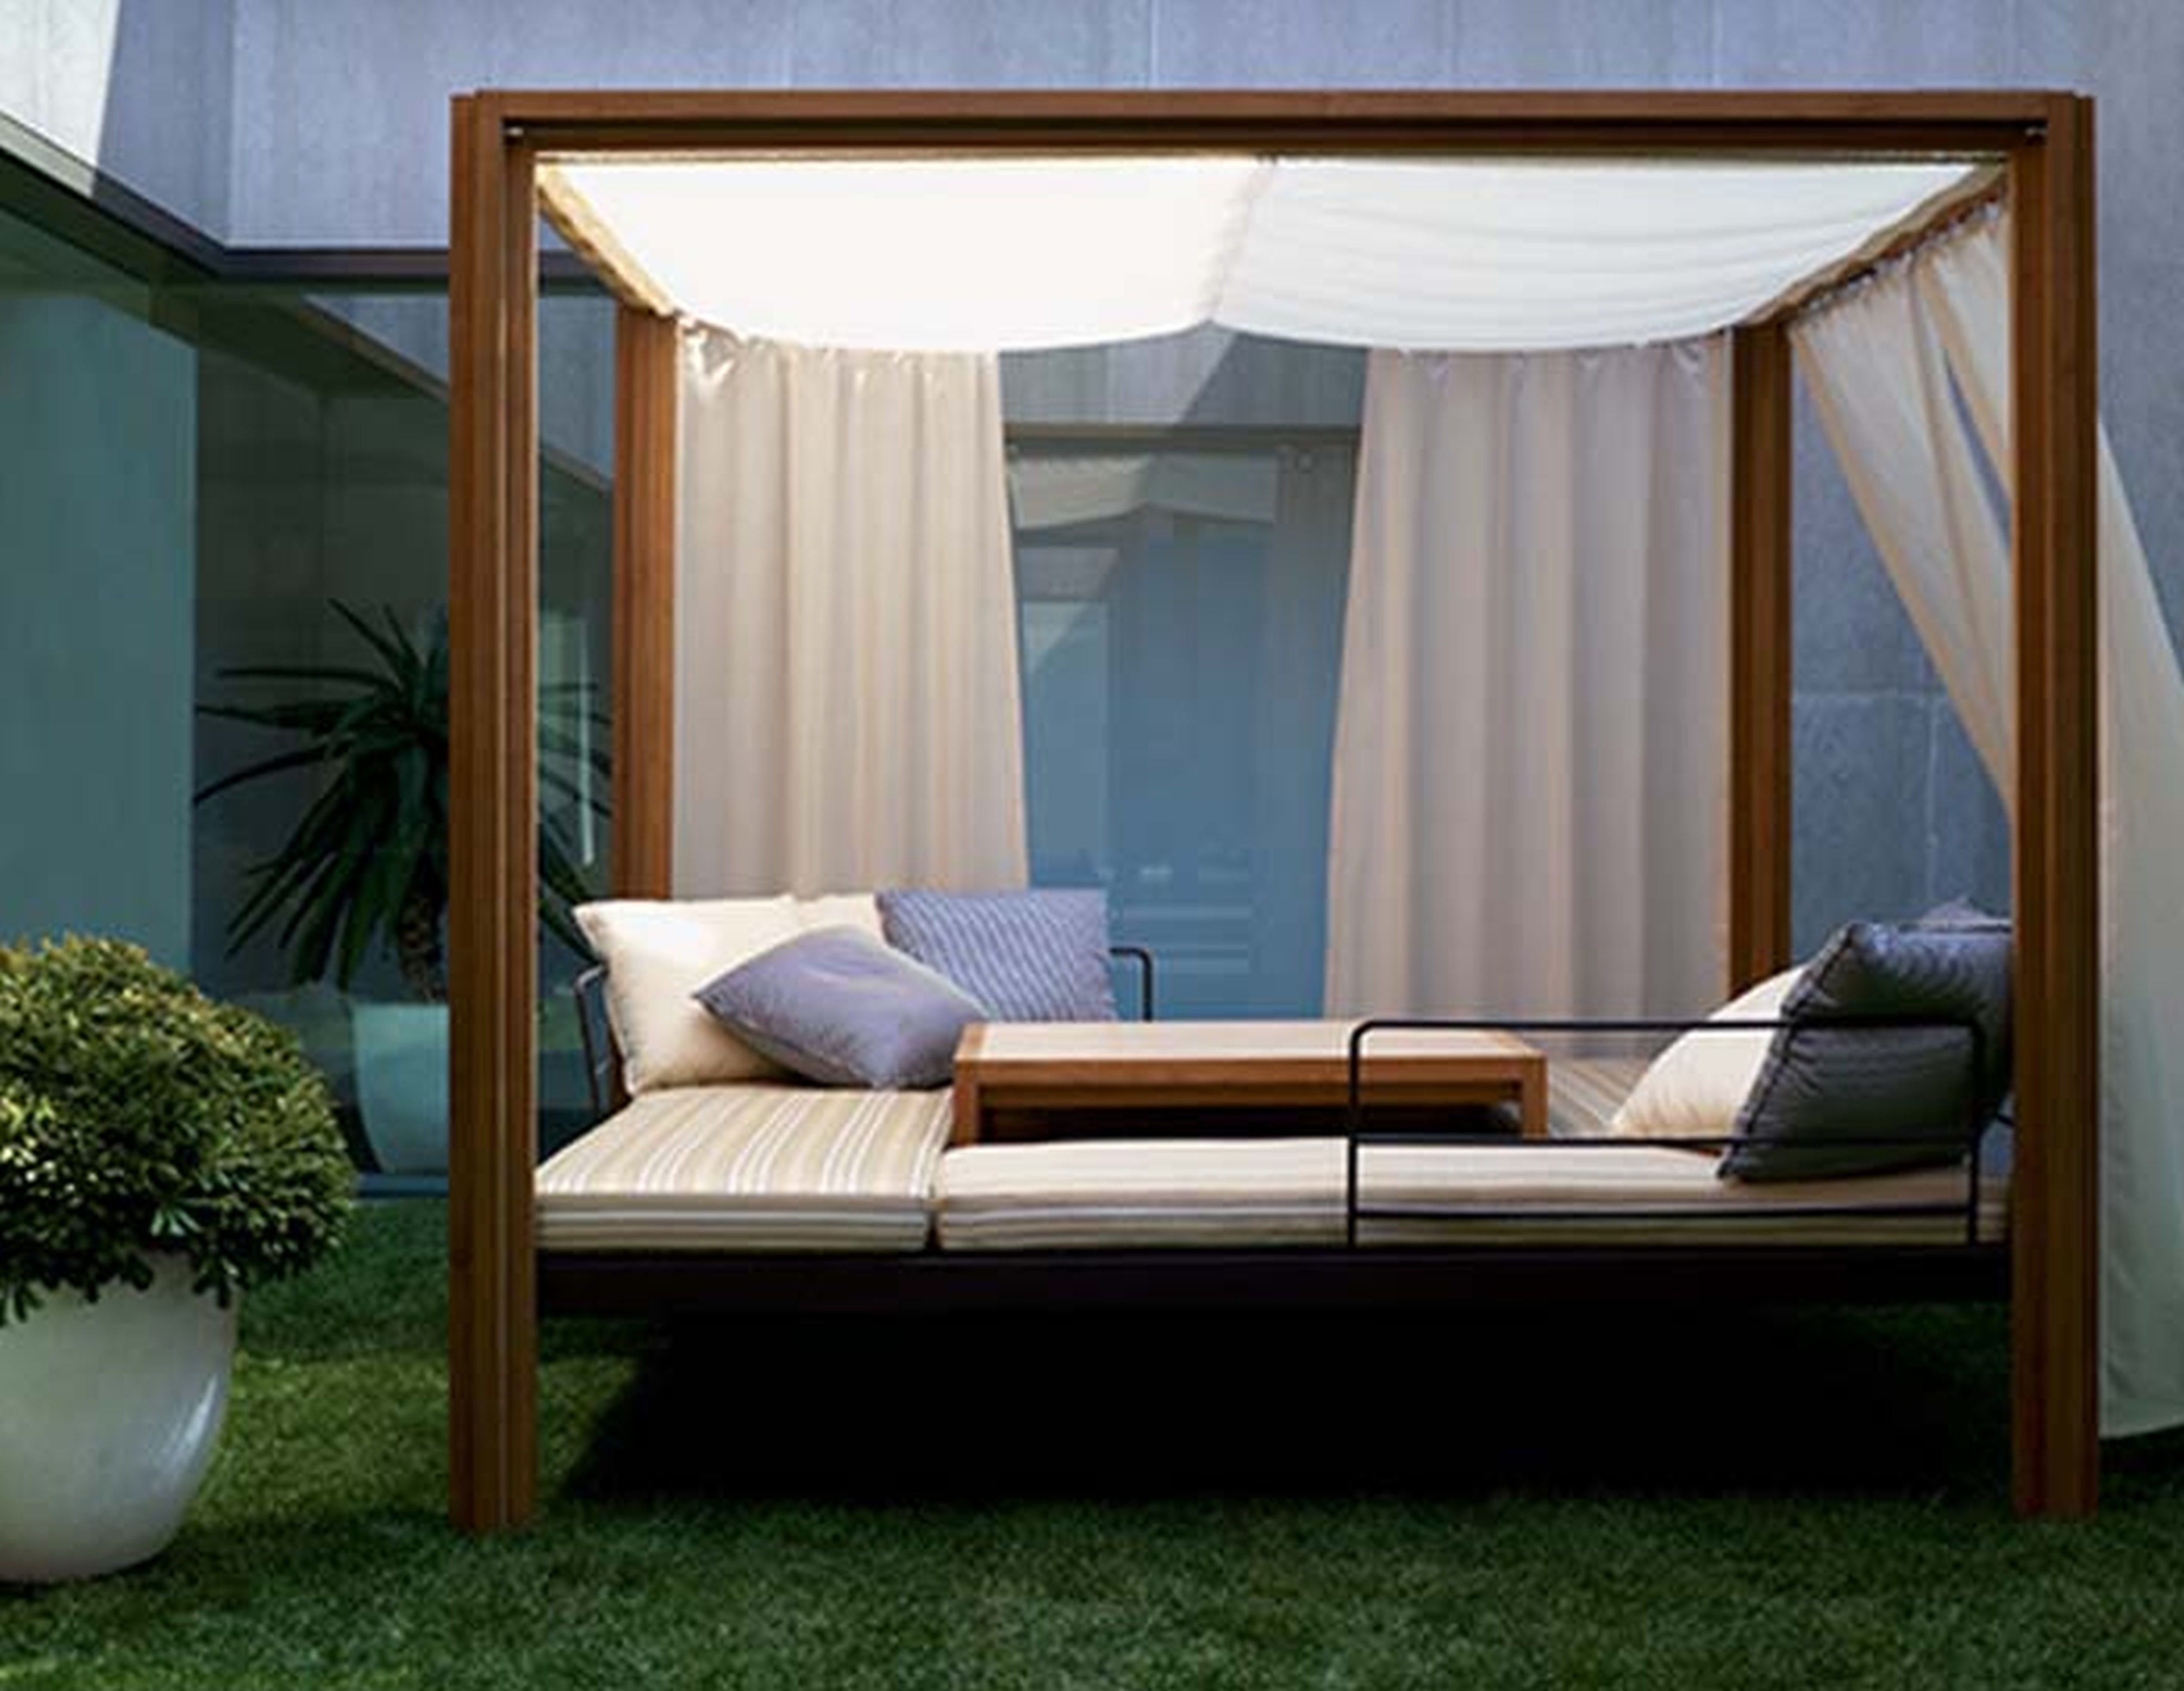 Famous Outdoor Sofas With Canopy For Patio Chairs : Daybeds For Sale Outdoor Wicker Garden Daybed Buy (View 4 of 15)